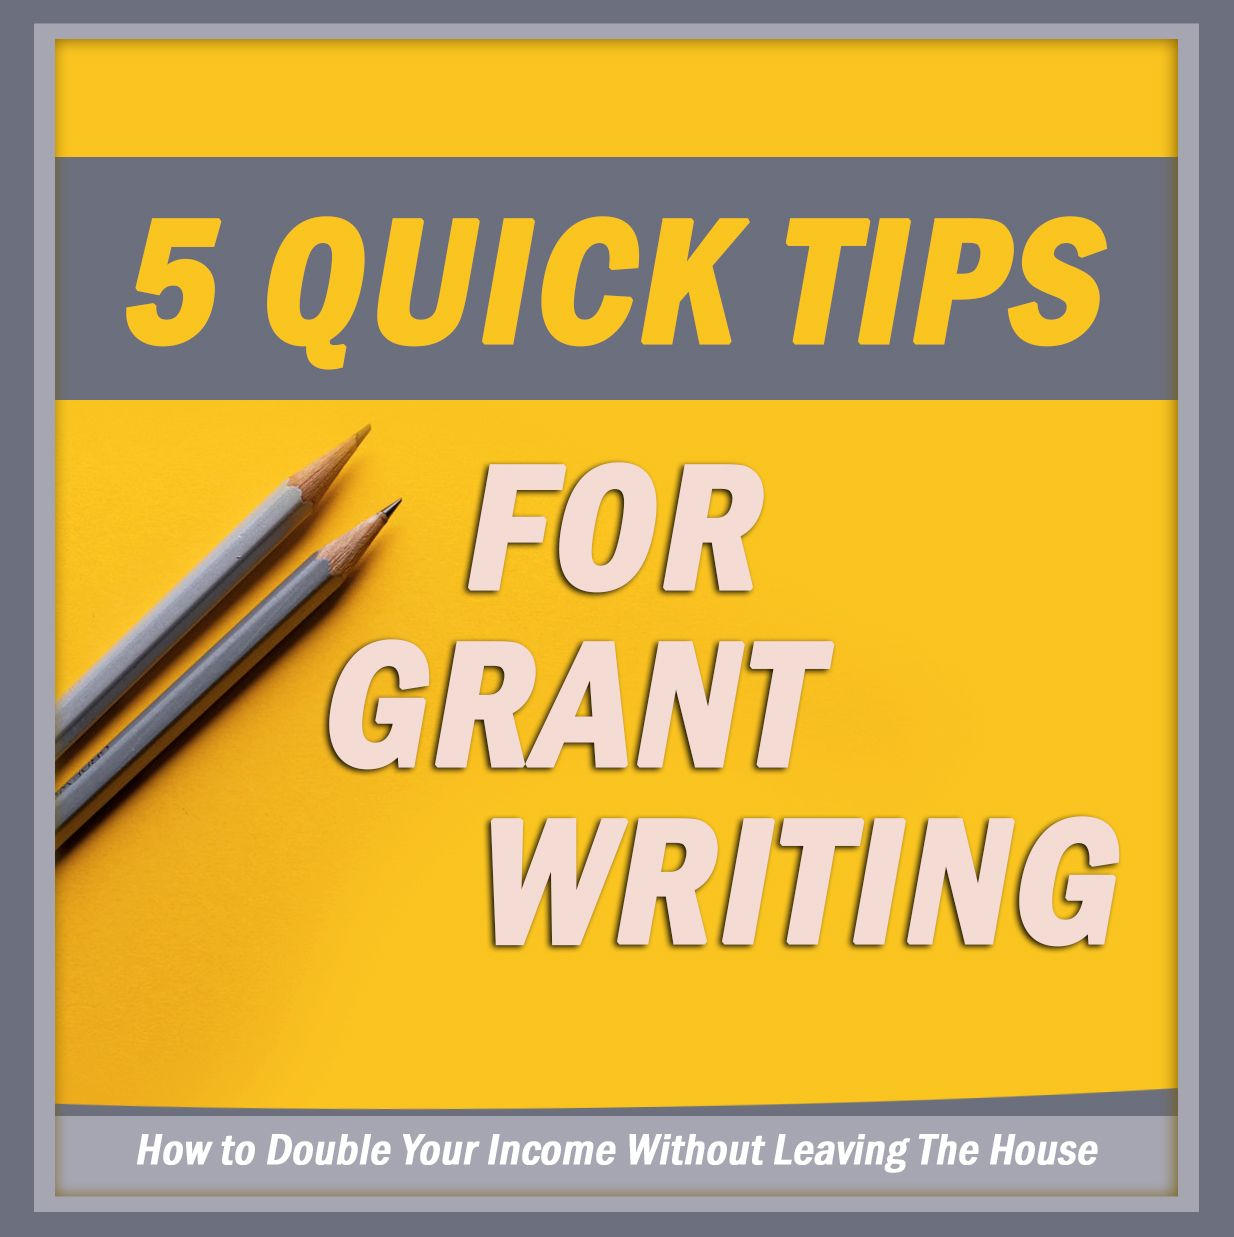 Do you need help grant writing or are you a grant writer